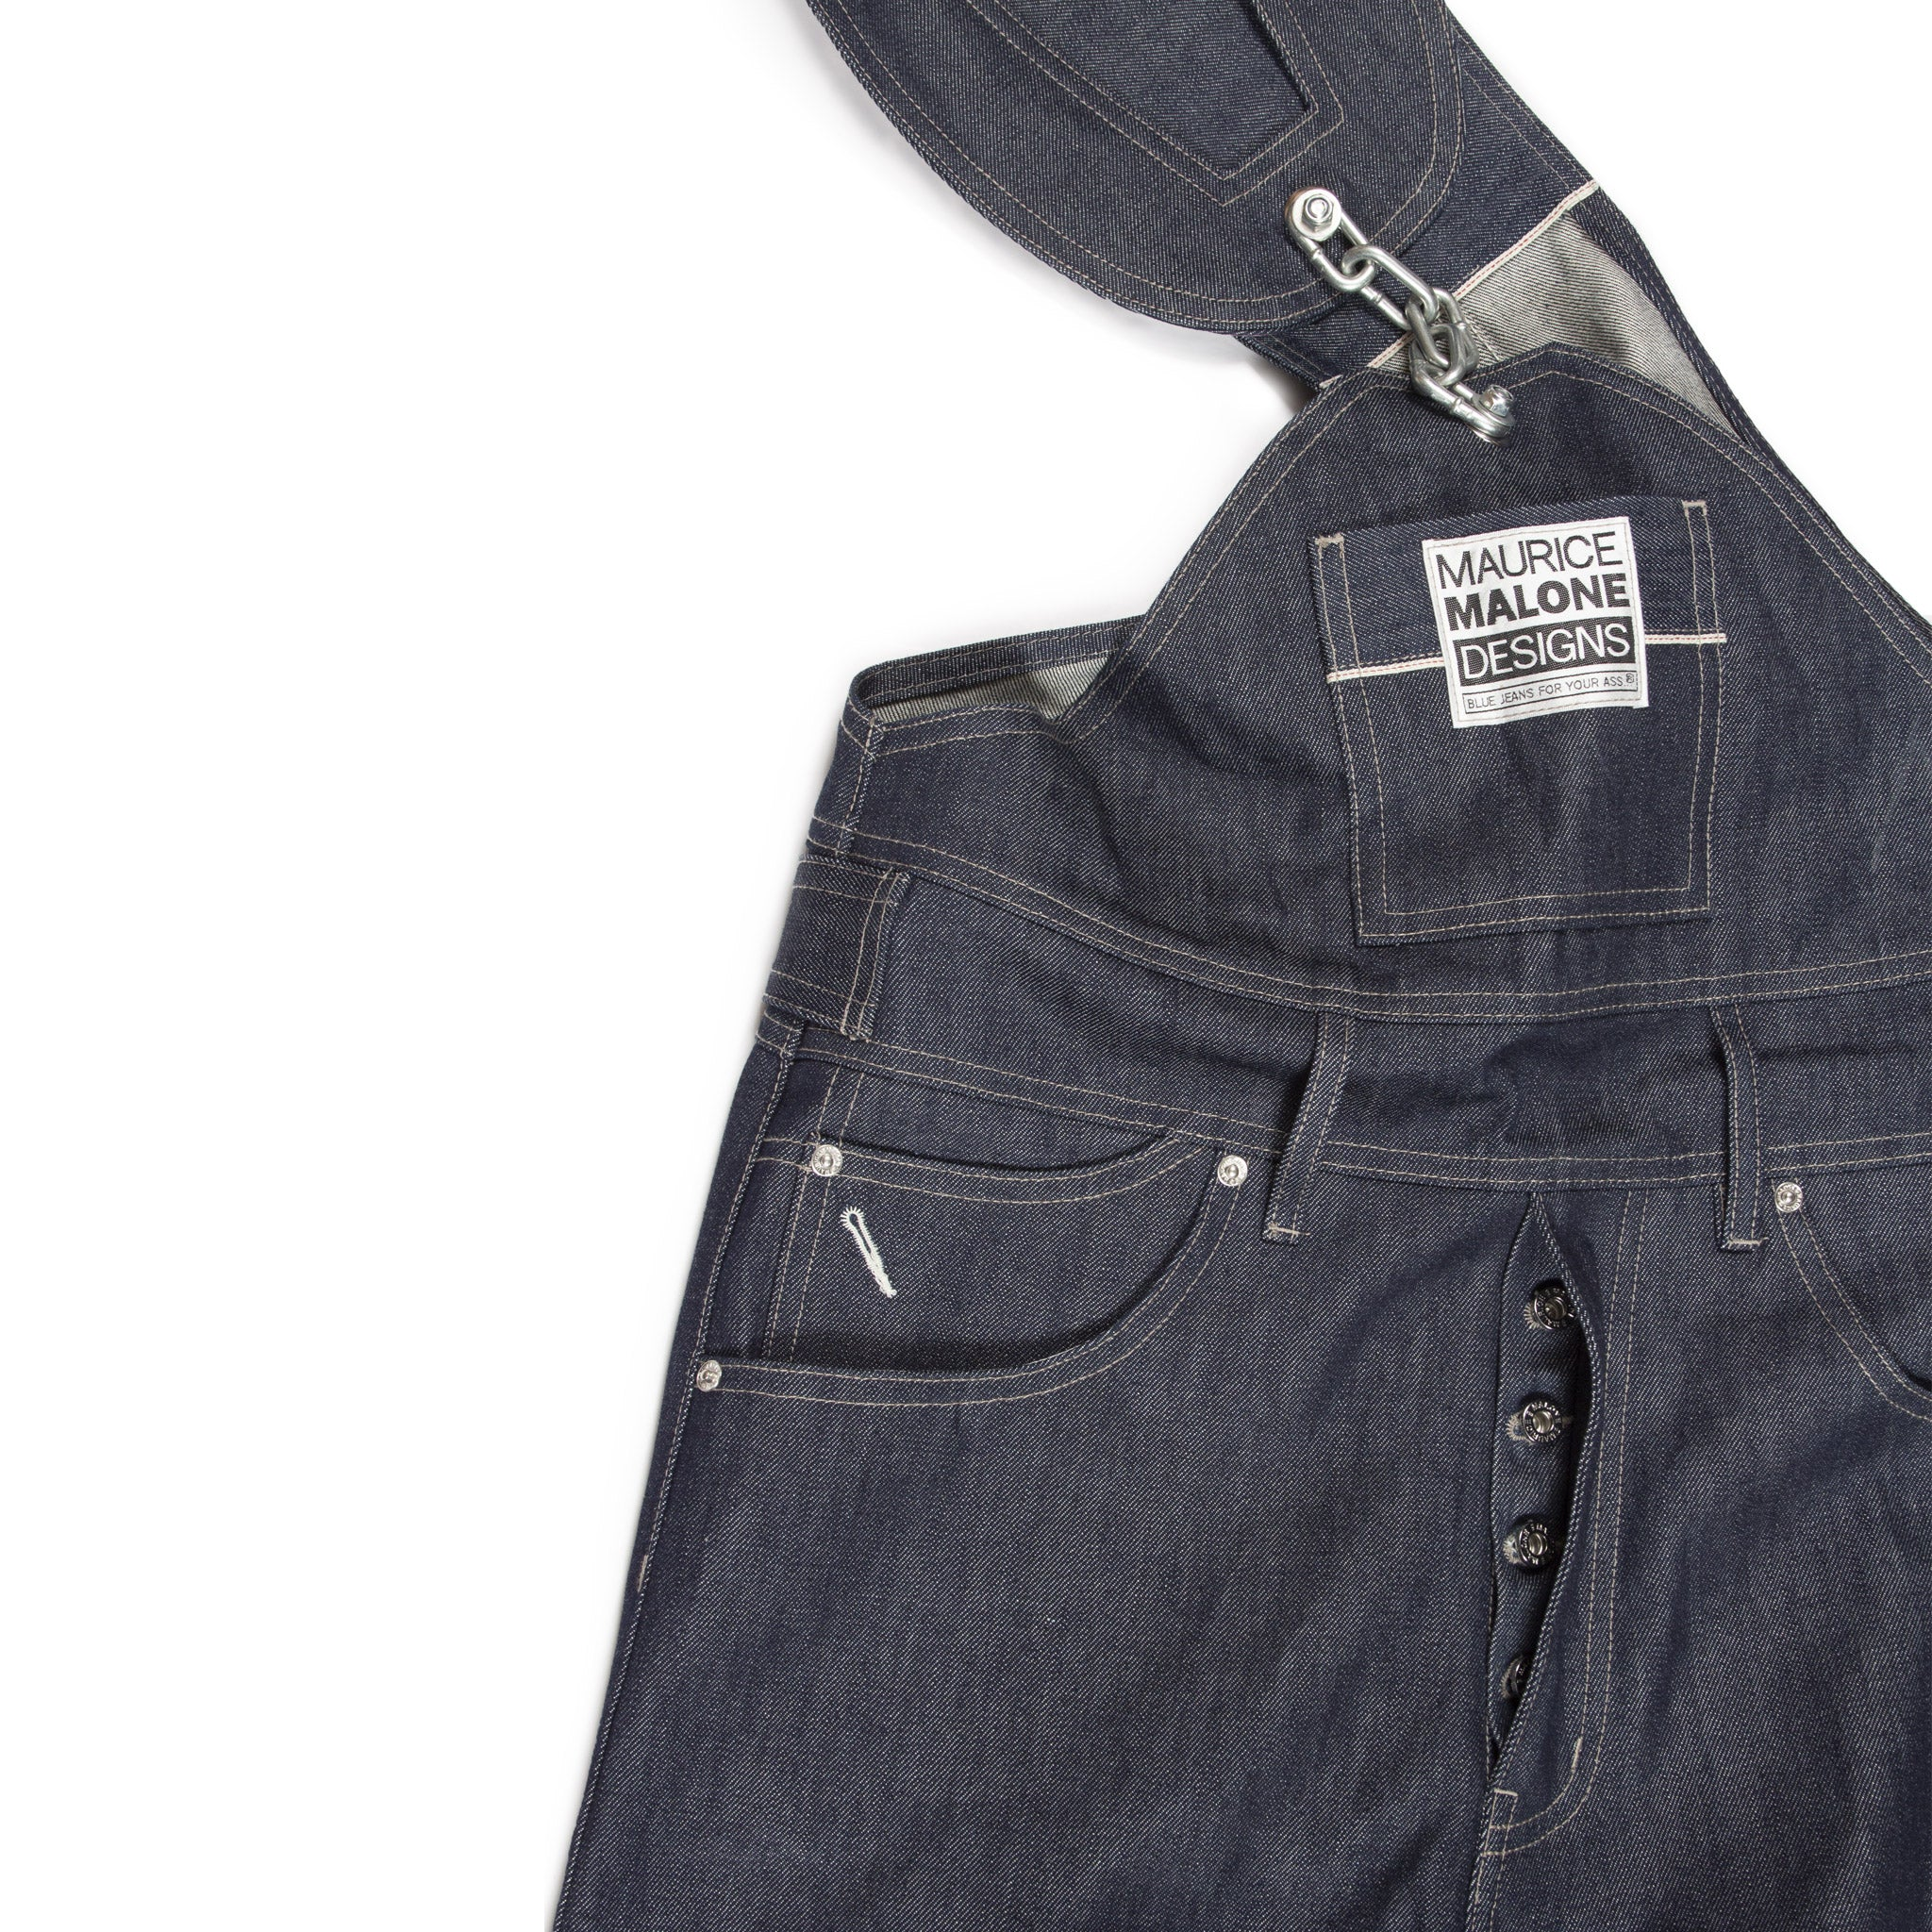 Close-up of chain-link selvedge raw denim overalls by Maurice Malone